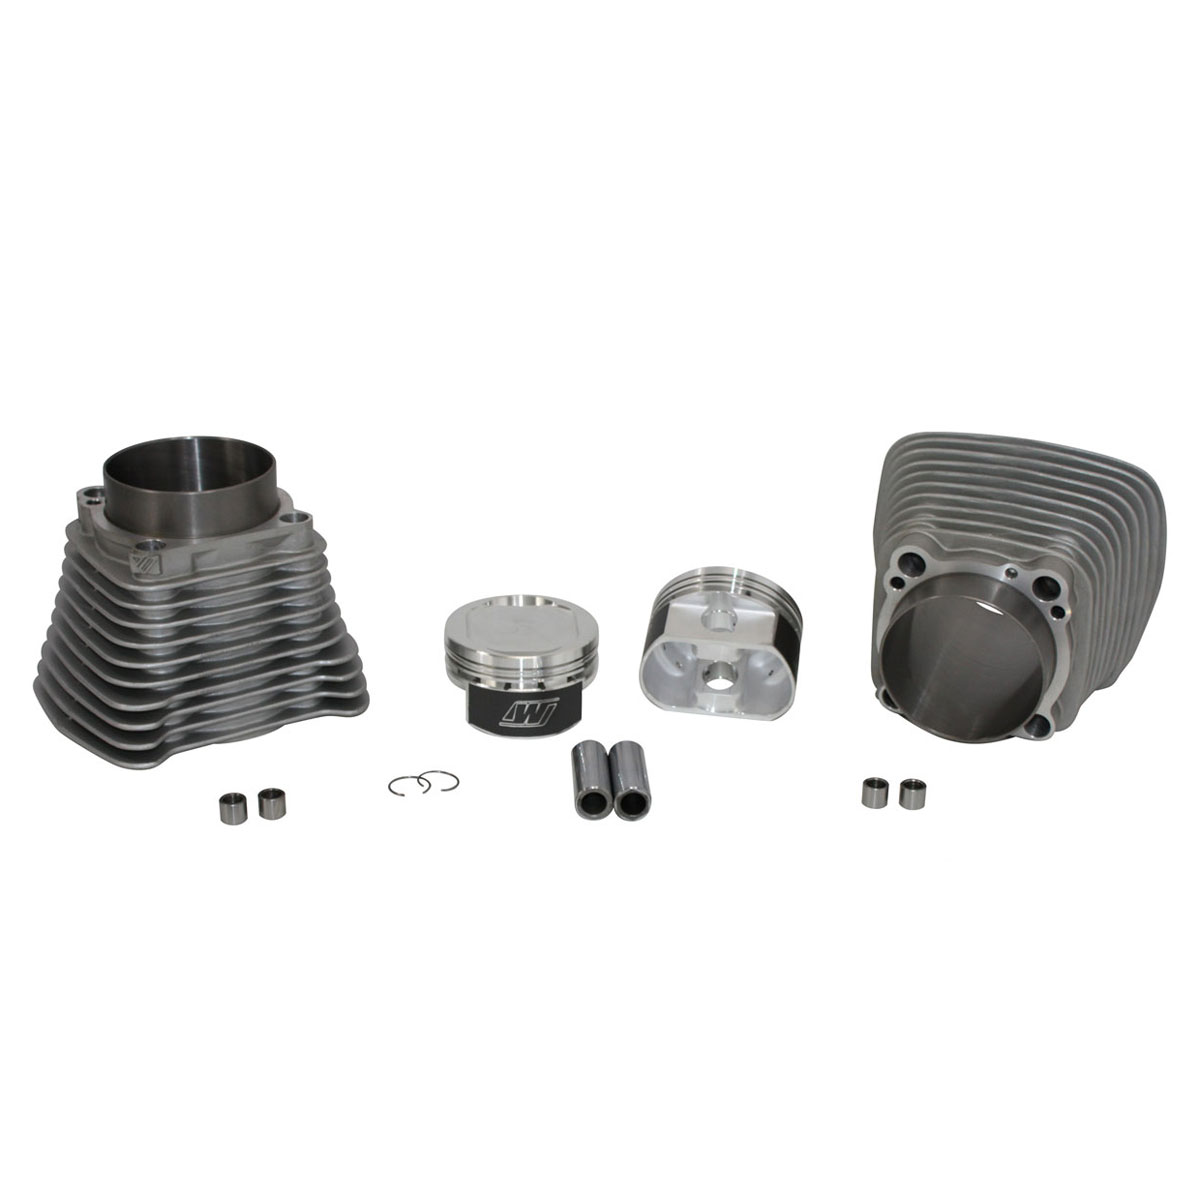 V-Twin Manufacturing 883cc-to-1200cc Conversion Kit